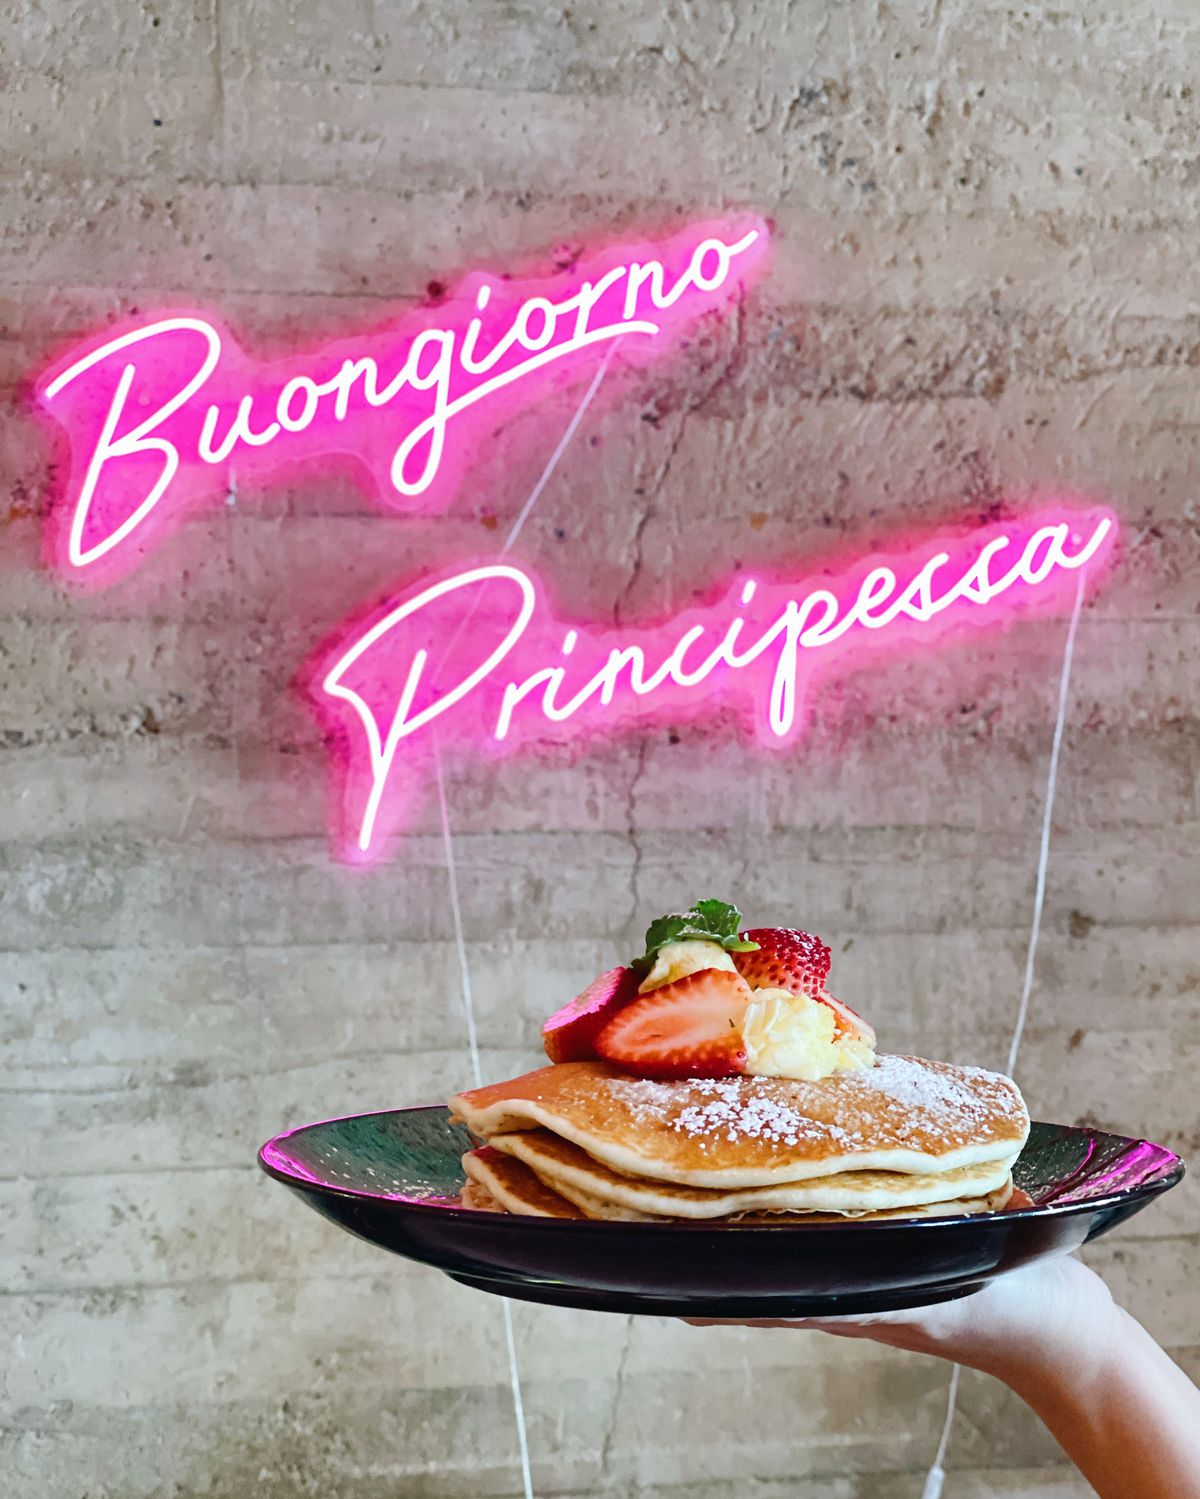 """Person holding a plate of pancakes in front of a neon sigh that says """"Bonjour Principessa"""""""